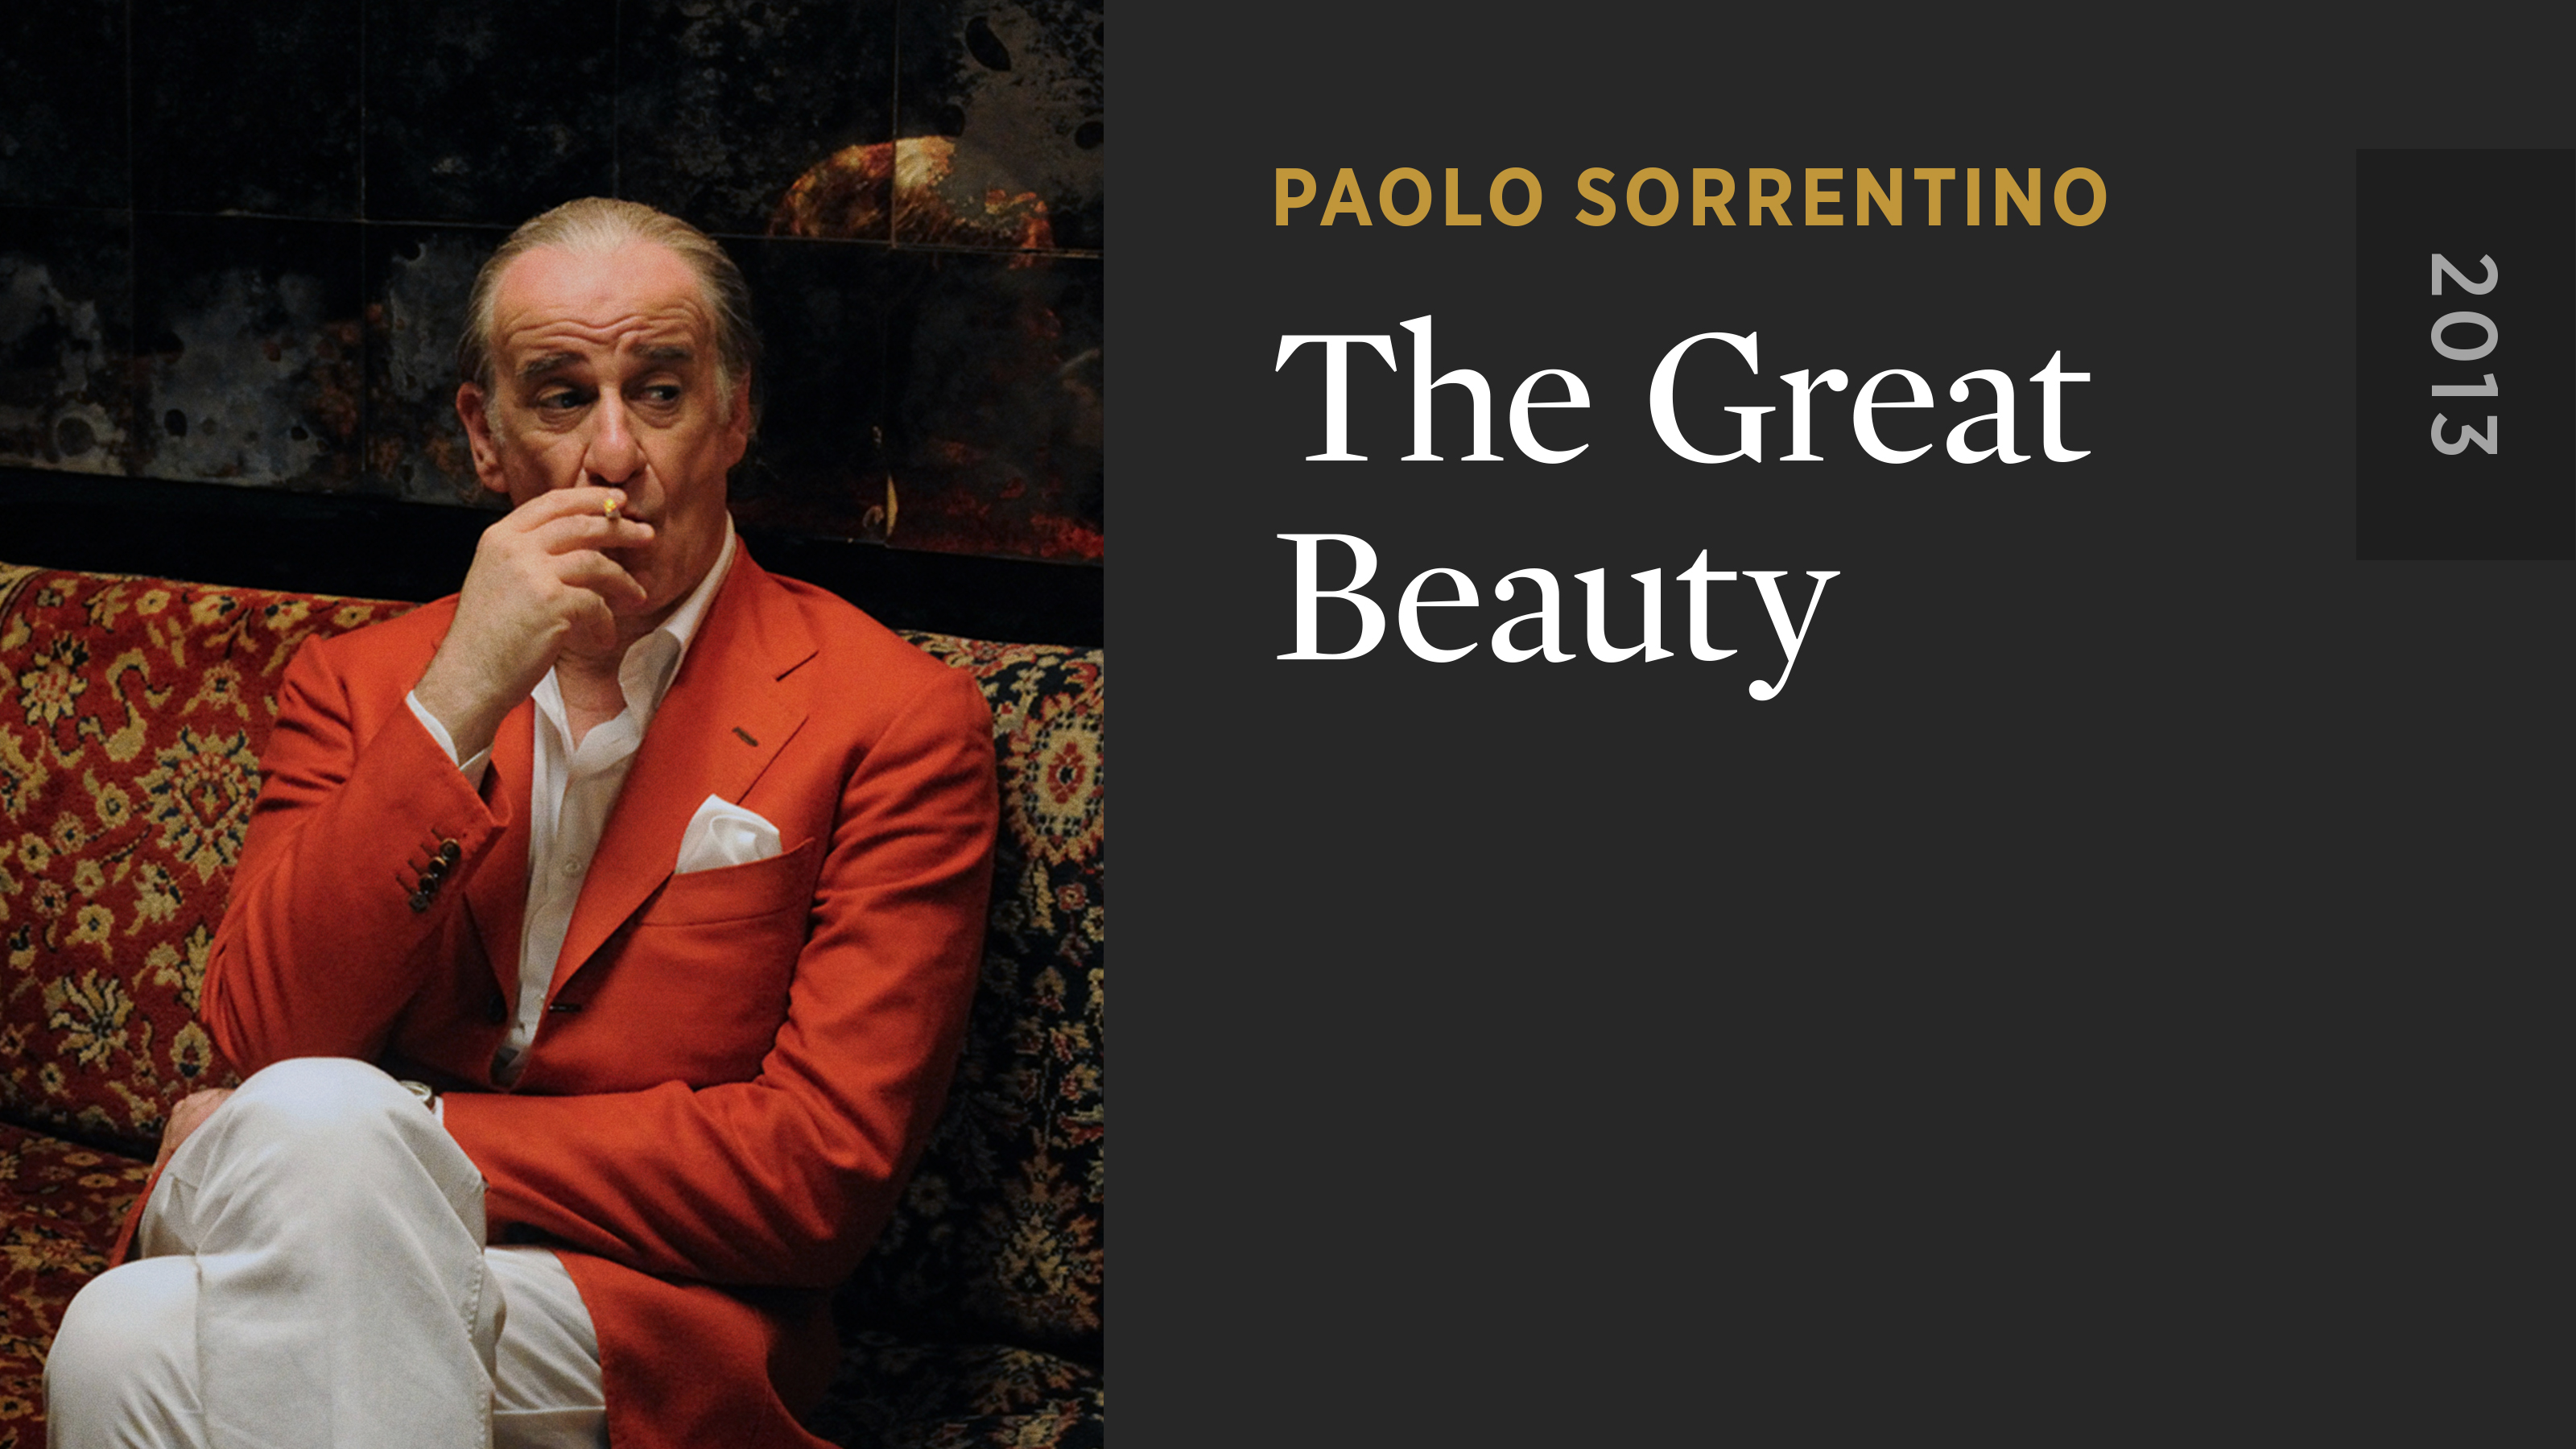 Paolo Sorrentino loro watch online